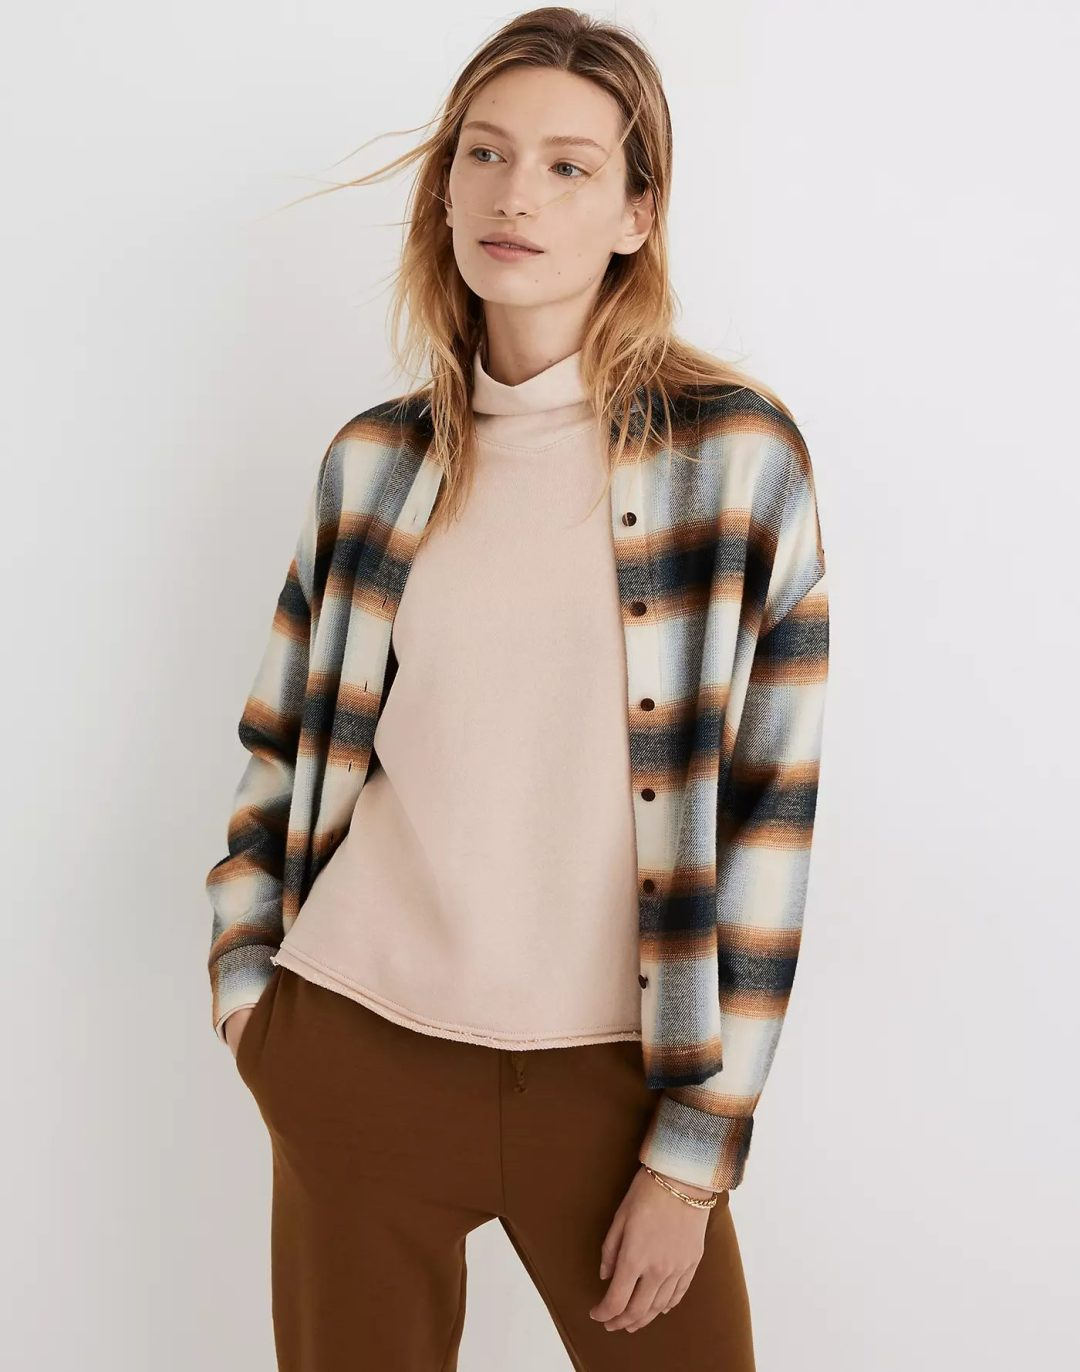 Plaid cardigan with brown pants